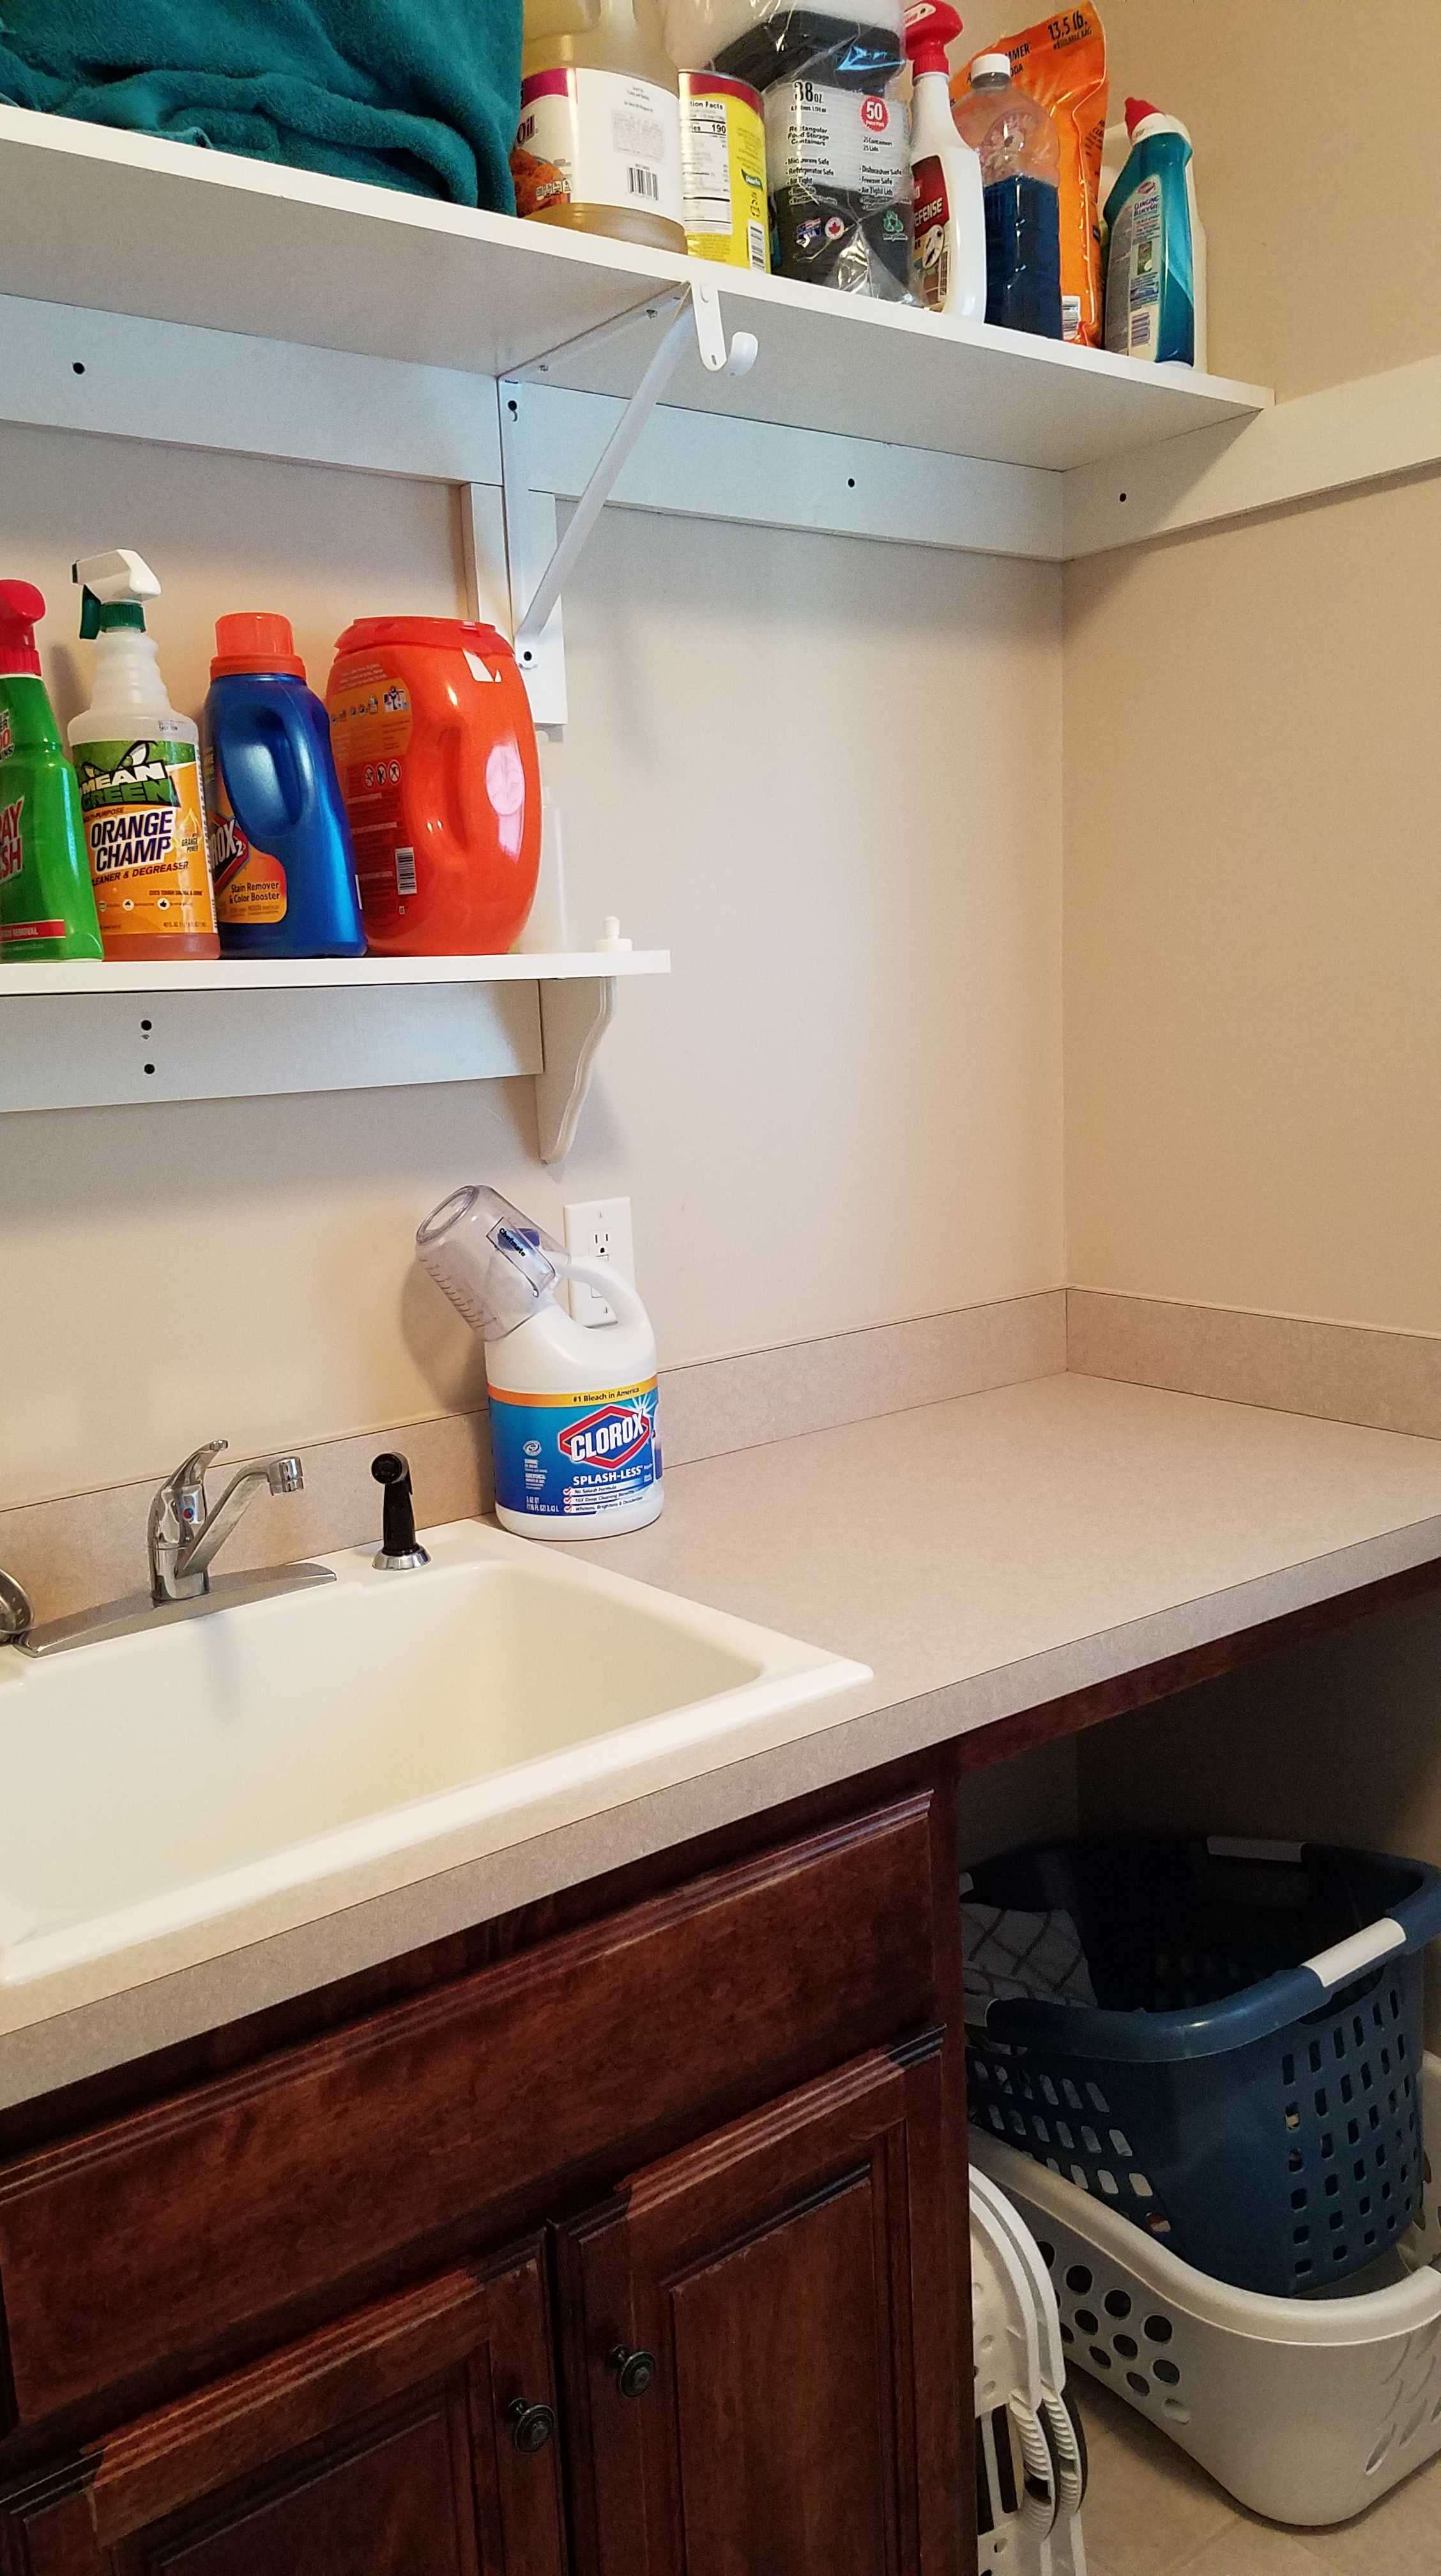 Laundry Room Project - After Sink Area With Shelves